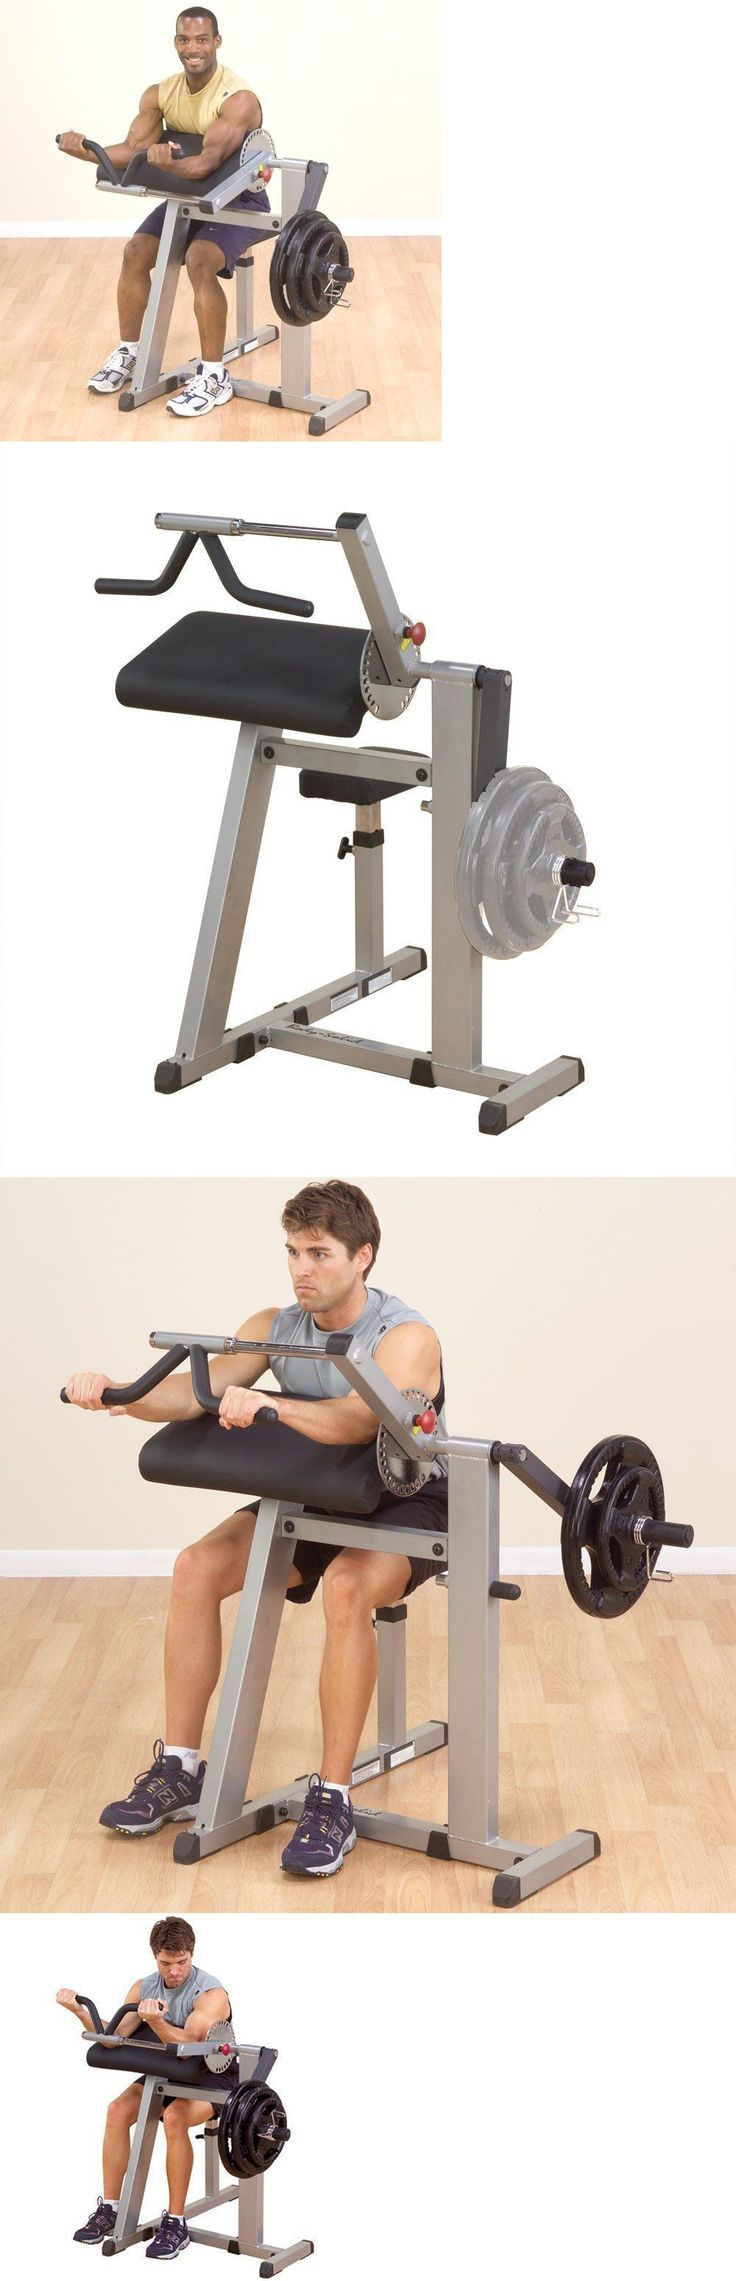 Home Gyms 158923: Body-Solid Cam Series Bicep Tricep Exercise Fitness Gym Arm Curl Machine Gcbt380 -> BUY IT NOW ONLY: $339 on eBay!